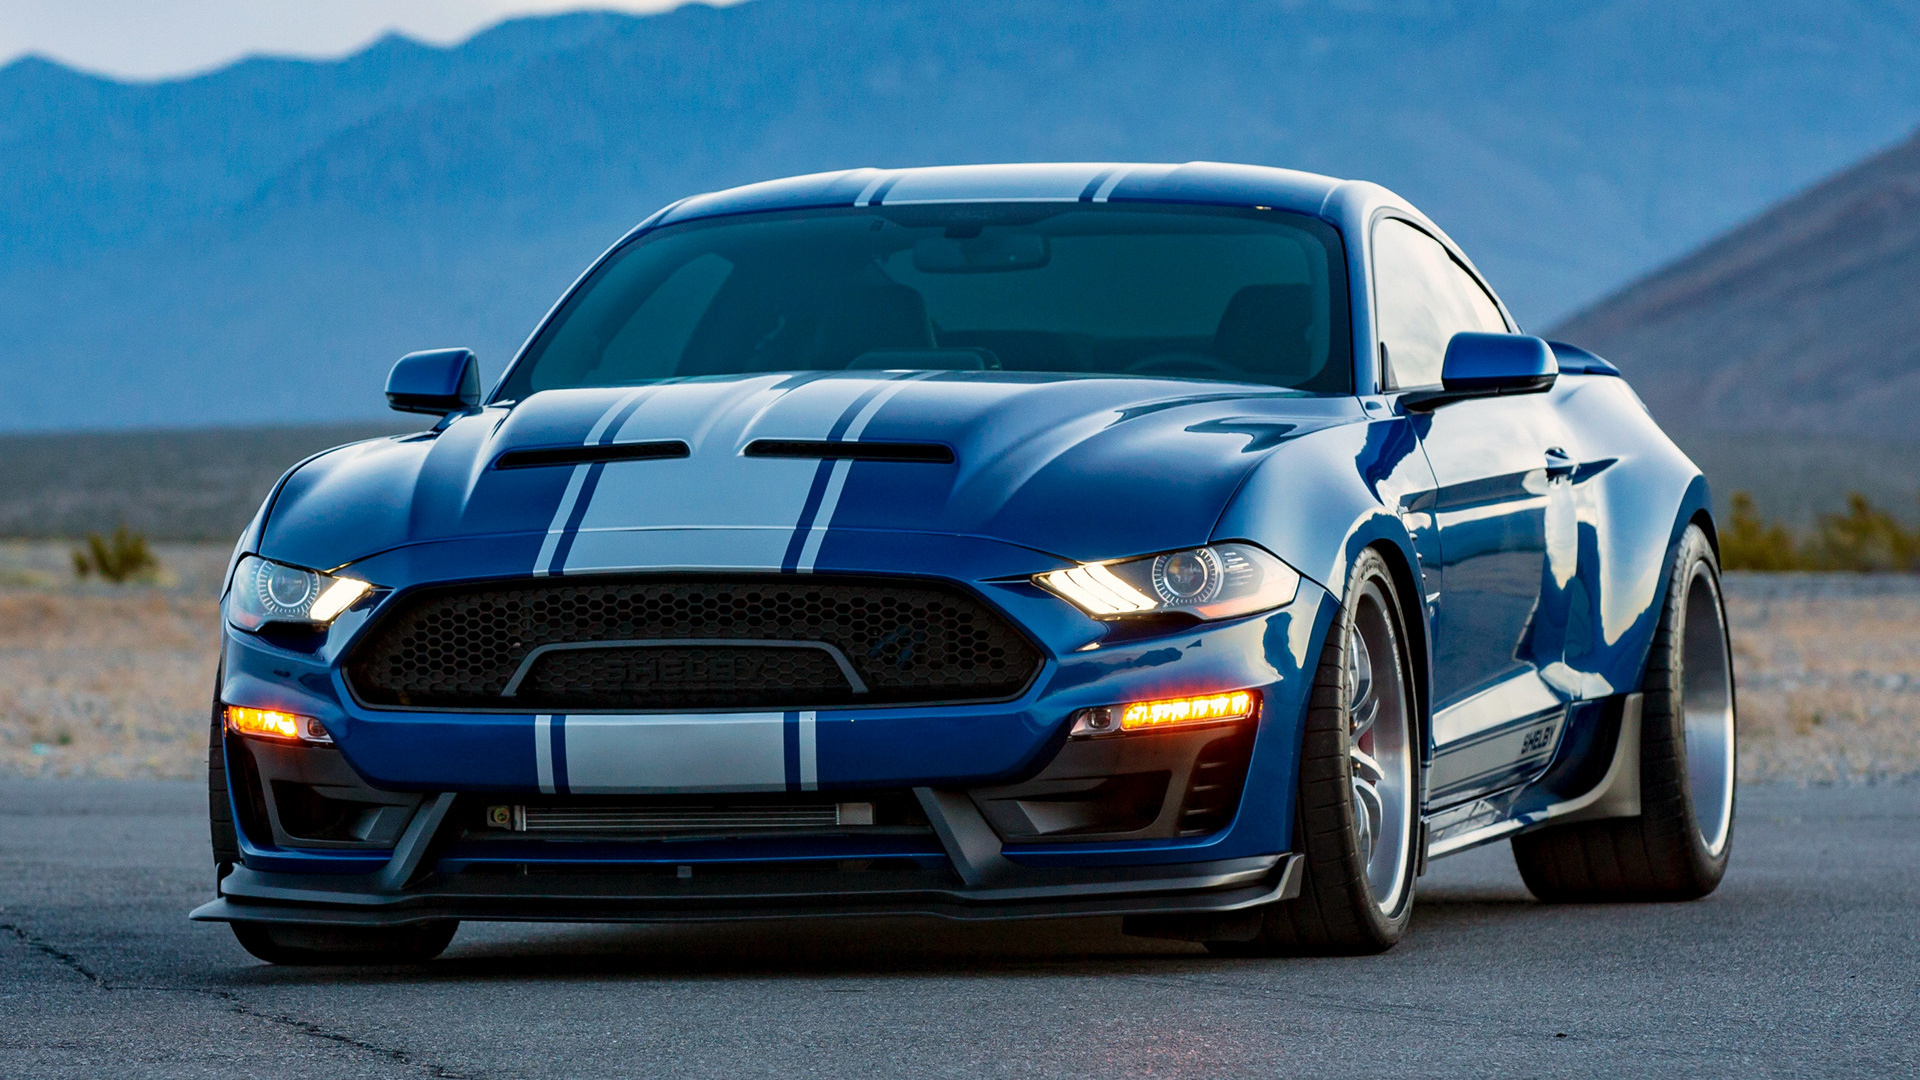 Mustang Super Snake >> 2018 Shelby Super Snake Widebody - Wallpapers and HD ...